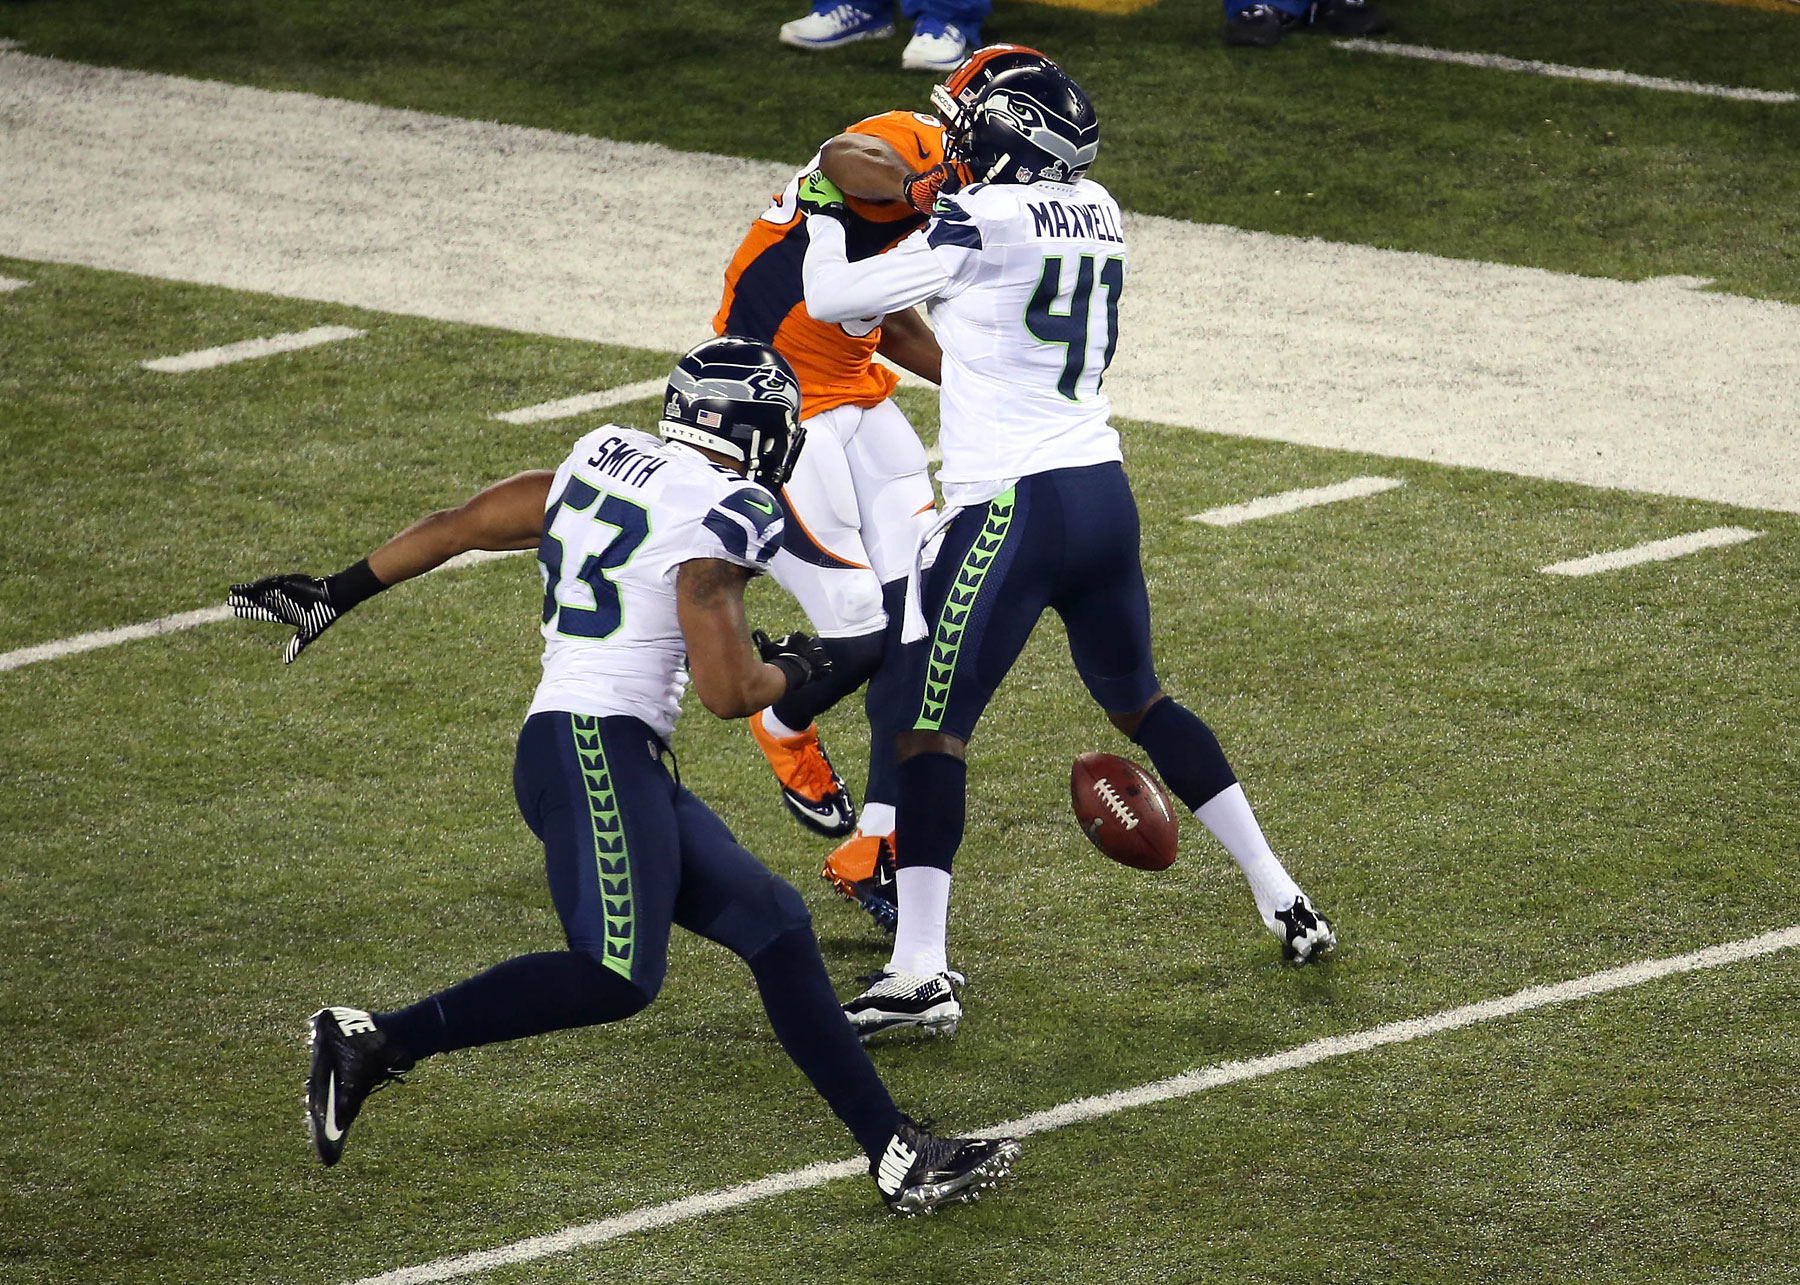 Seattle Seahawks cornerback Byron Maxwell forces the fumble of Denver Broncos wide receiver Demaryius Thomas during the third quarter.